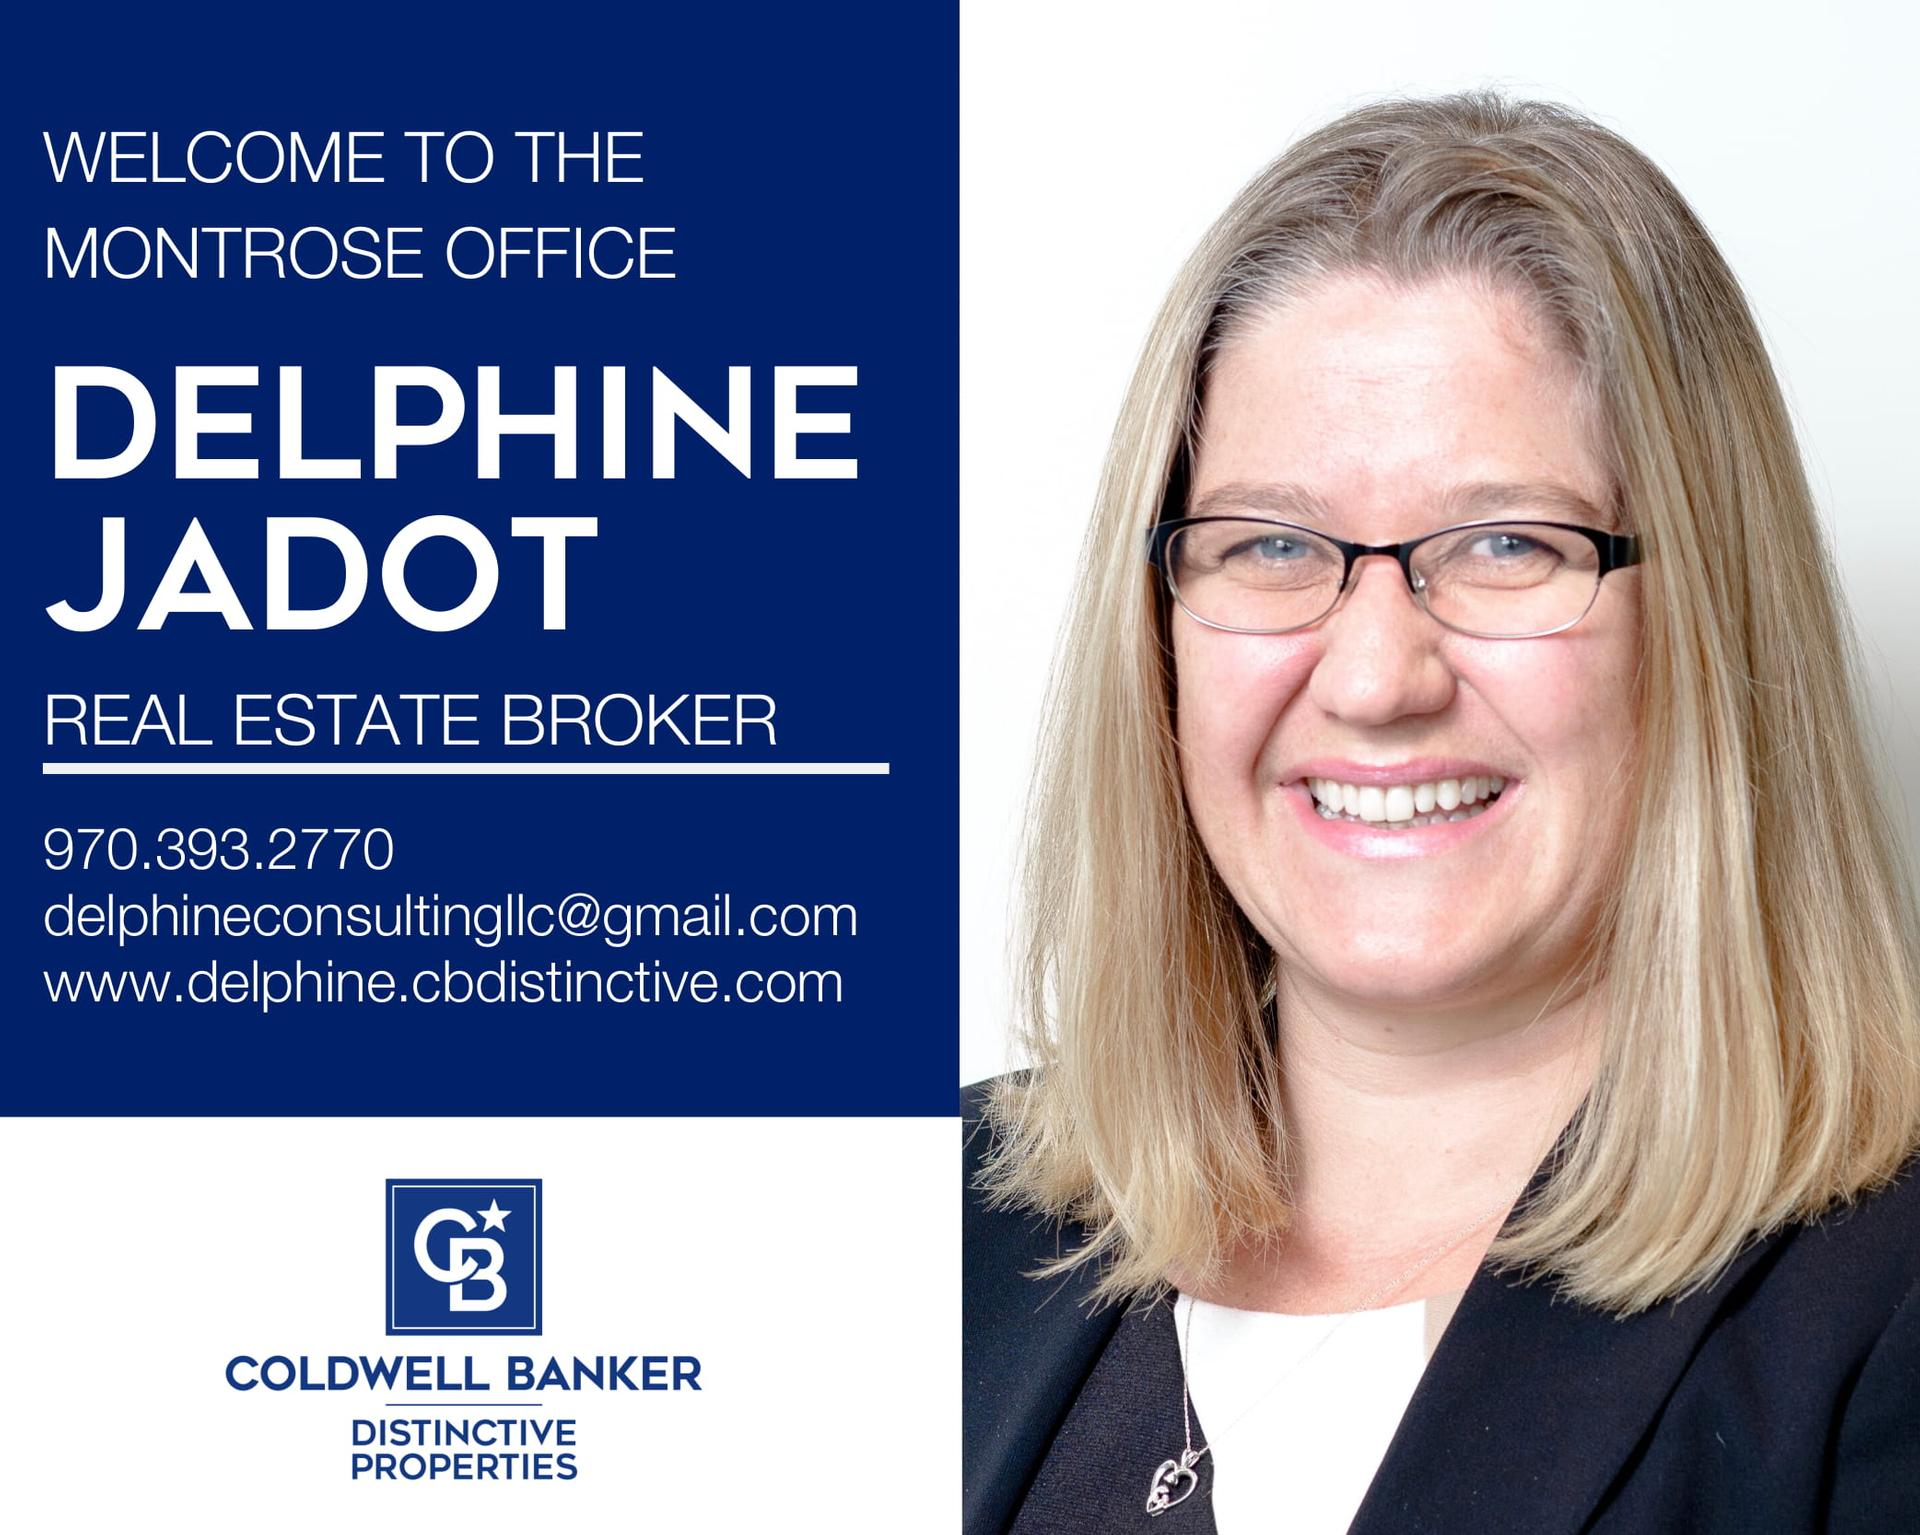 Please help us welcome Delphine Jadot to our Coldwell Banker Distinctive Properties - Montrose office. Main Photo